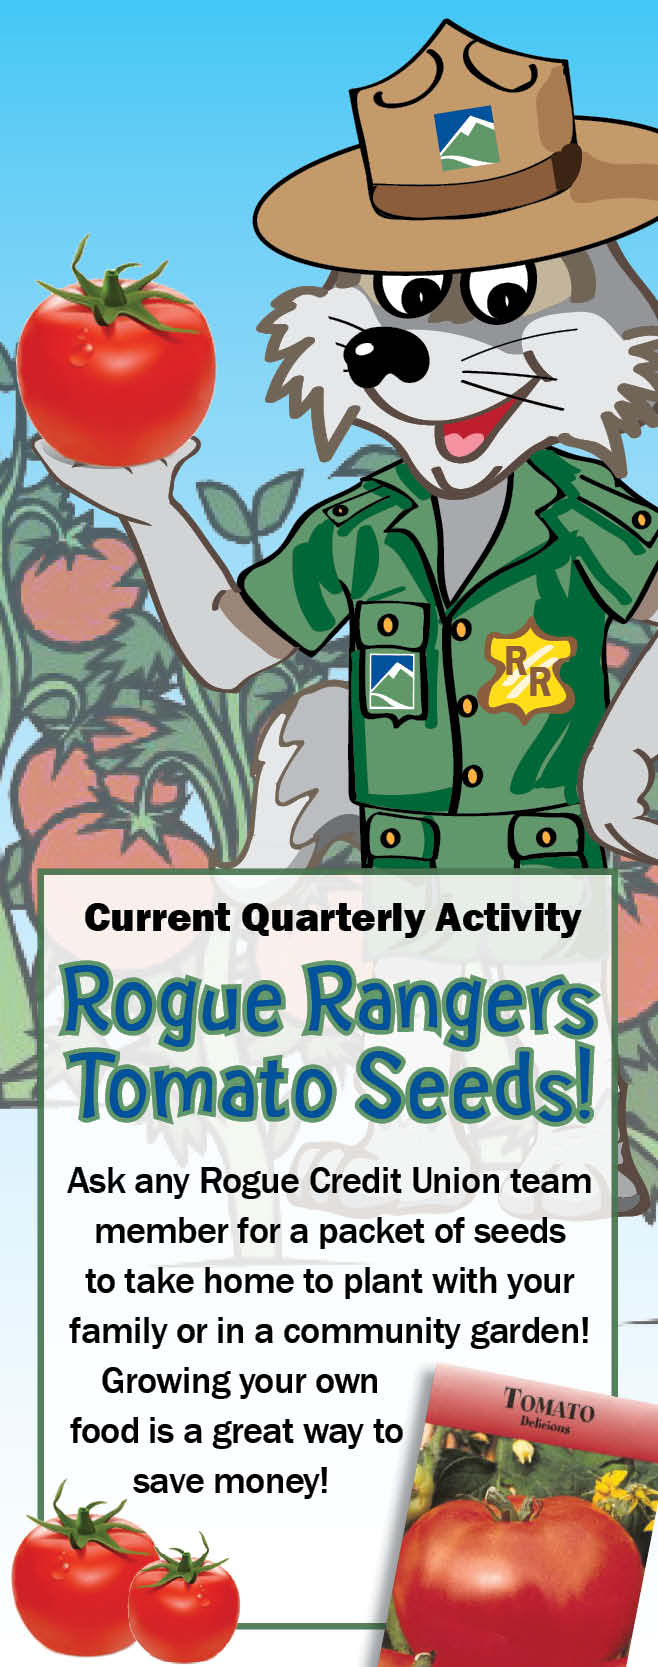 Rogue Ranger Tomato Seeds